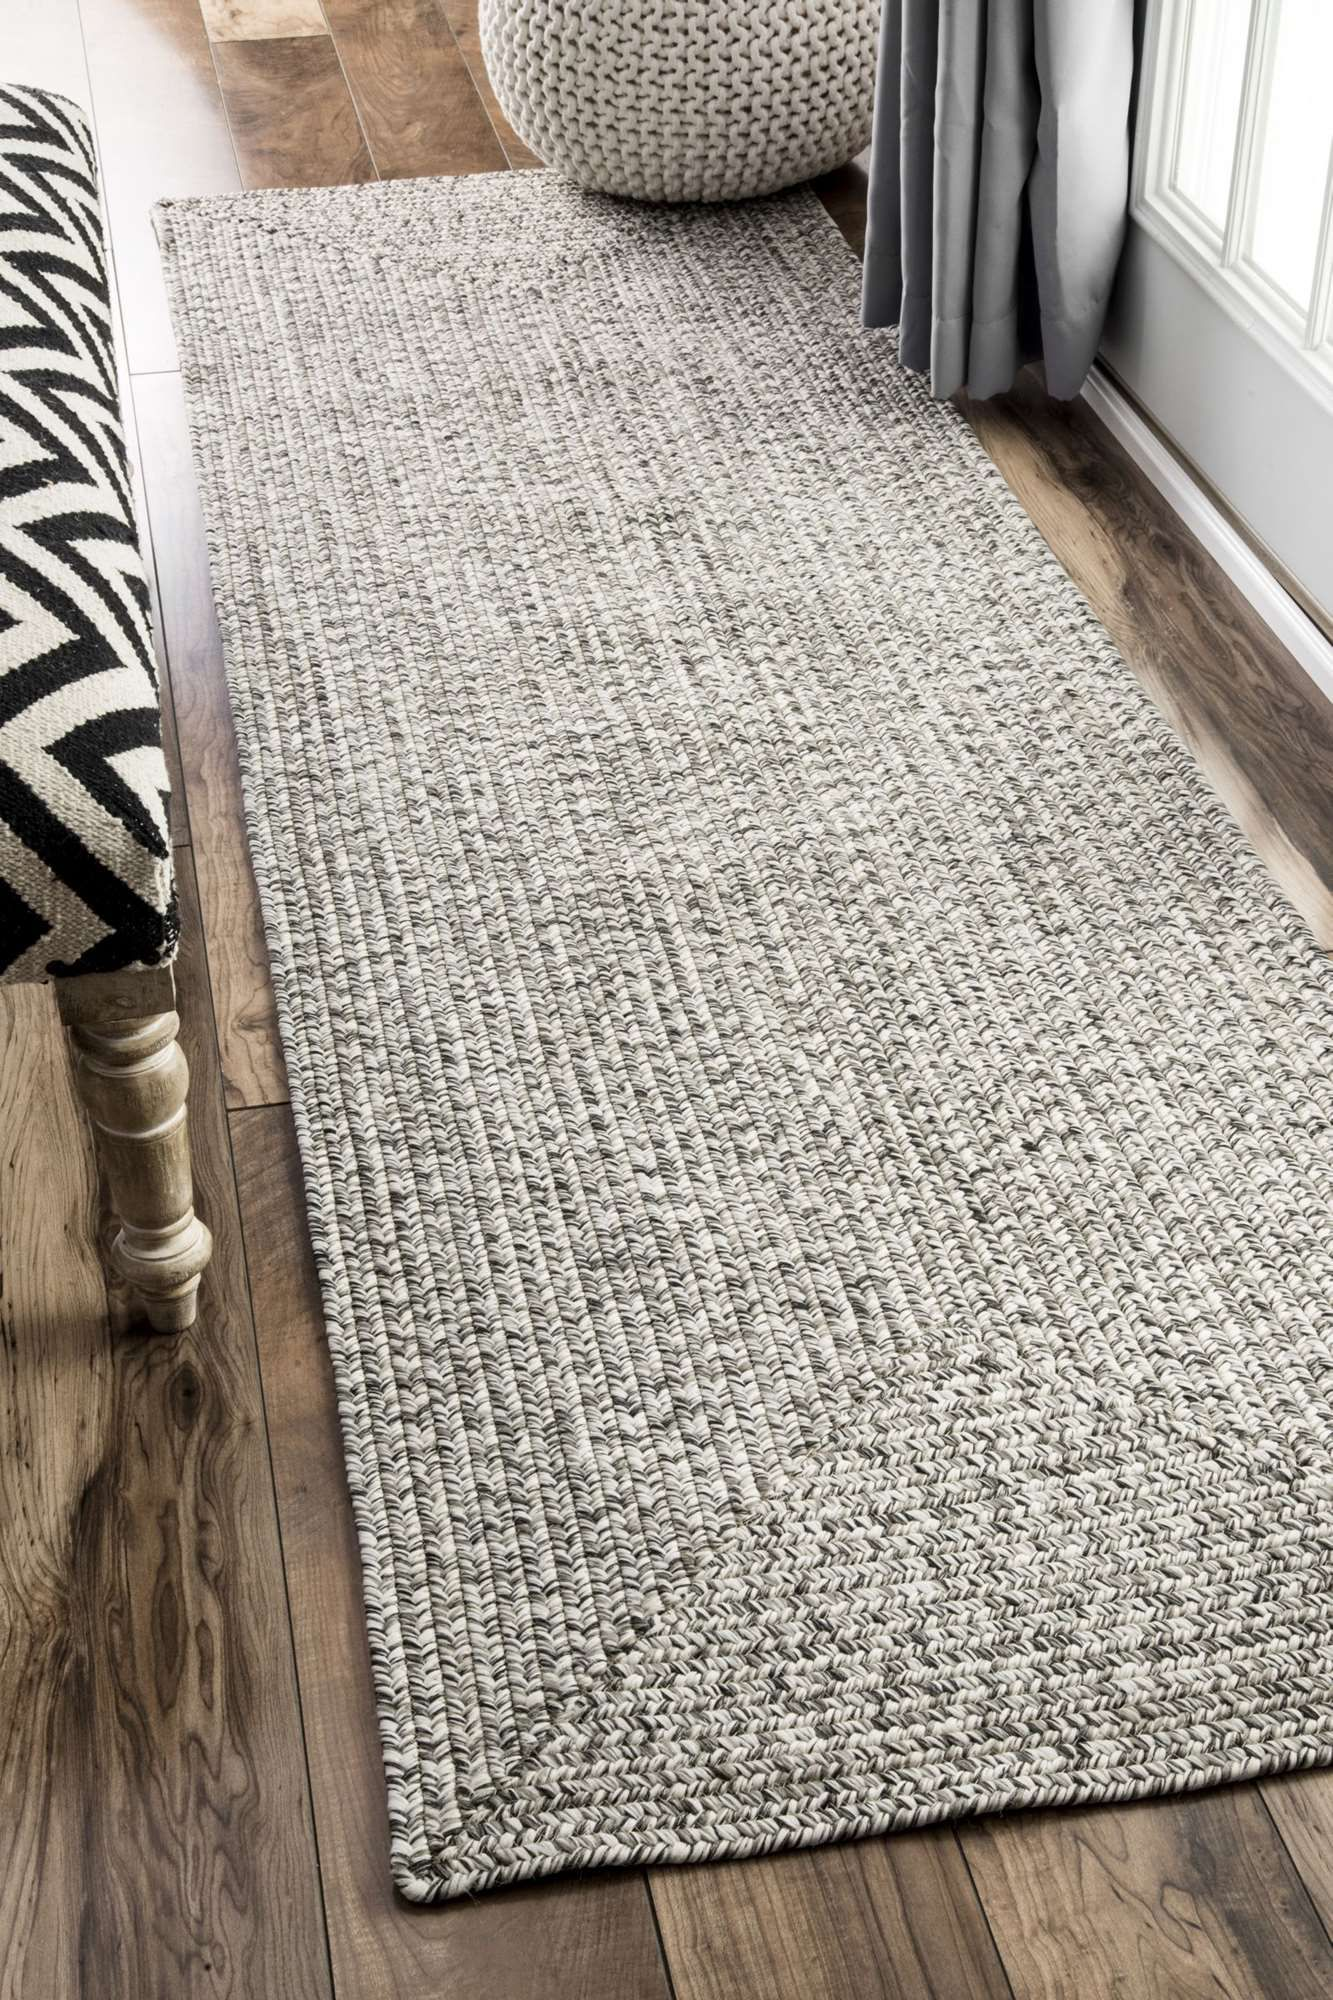 rug runners for kitchen recessed lighting rugs usa area in many styles including contemporary